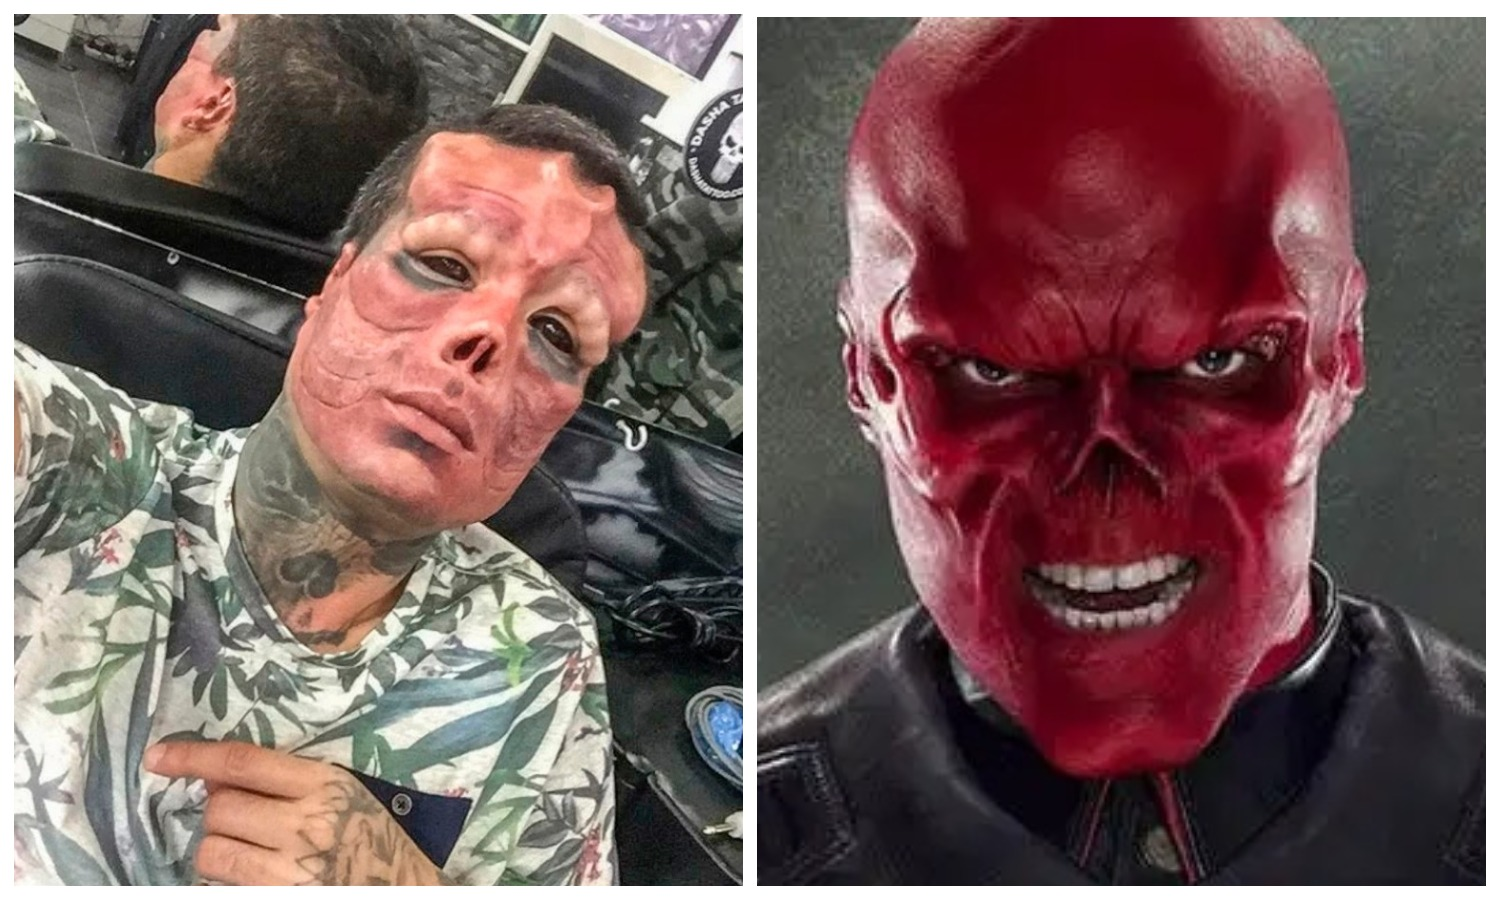 The Spaniard who cut off his nose and made horns to look like the Red Skull from The Avengers